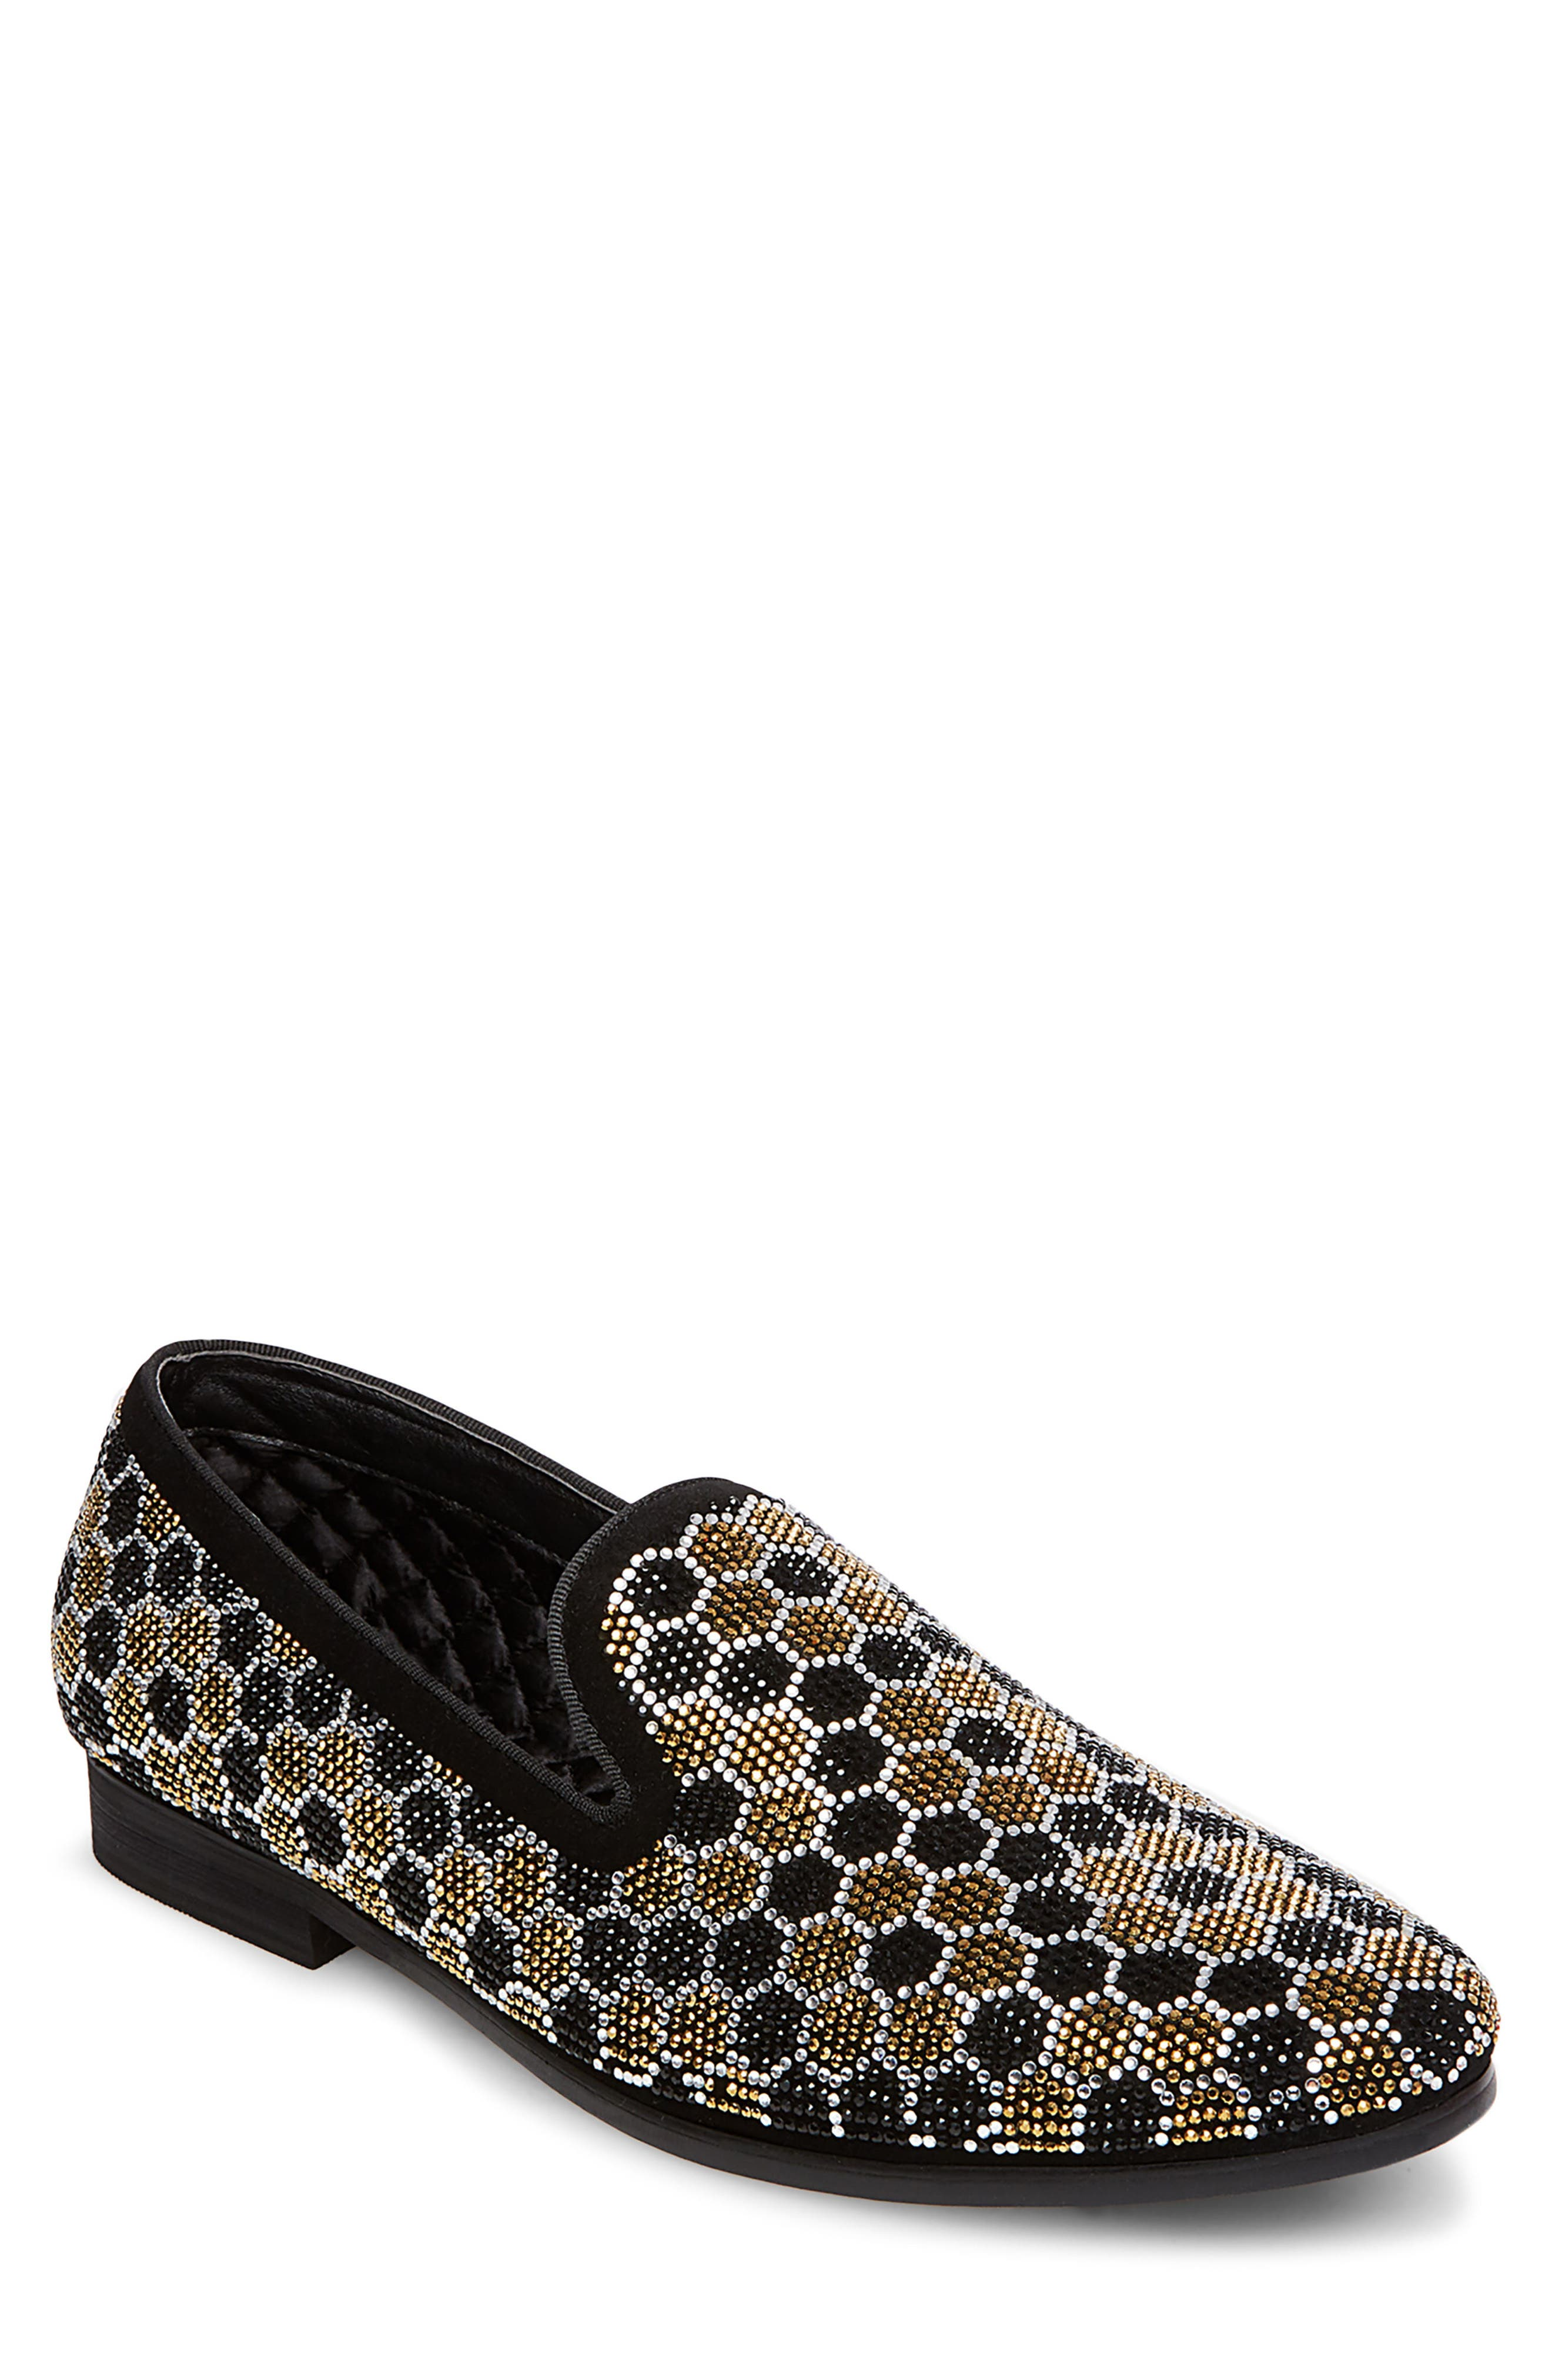 Caspian Studded Venetian Loafer,                         Main,                         color, 003